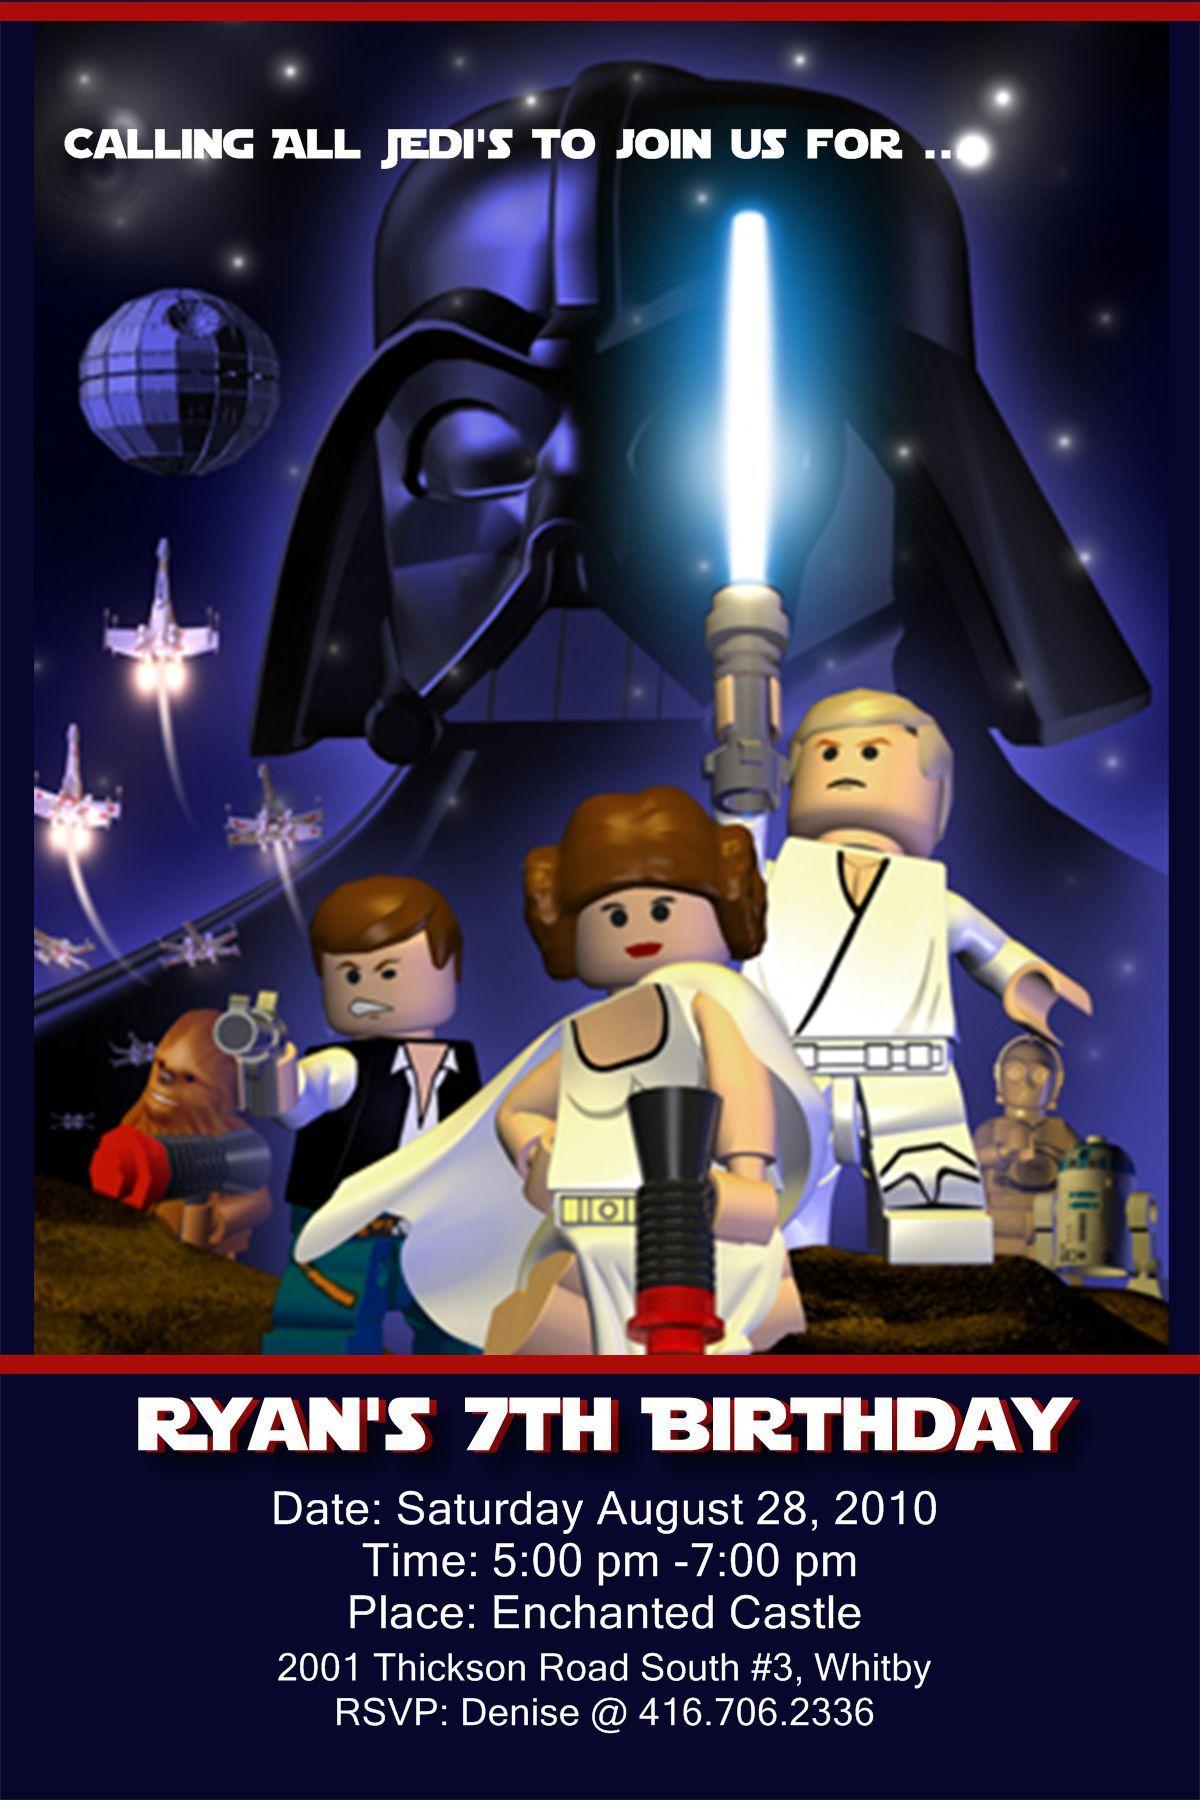 Star wars birthday invitations nz star wars birthday invitations star wars birthday invitations nz stopboris Choice Image